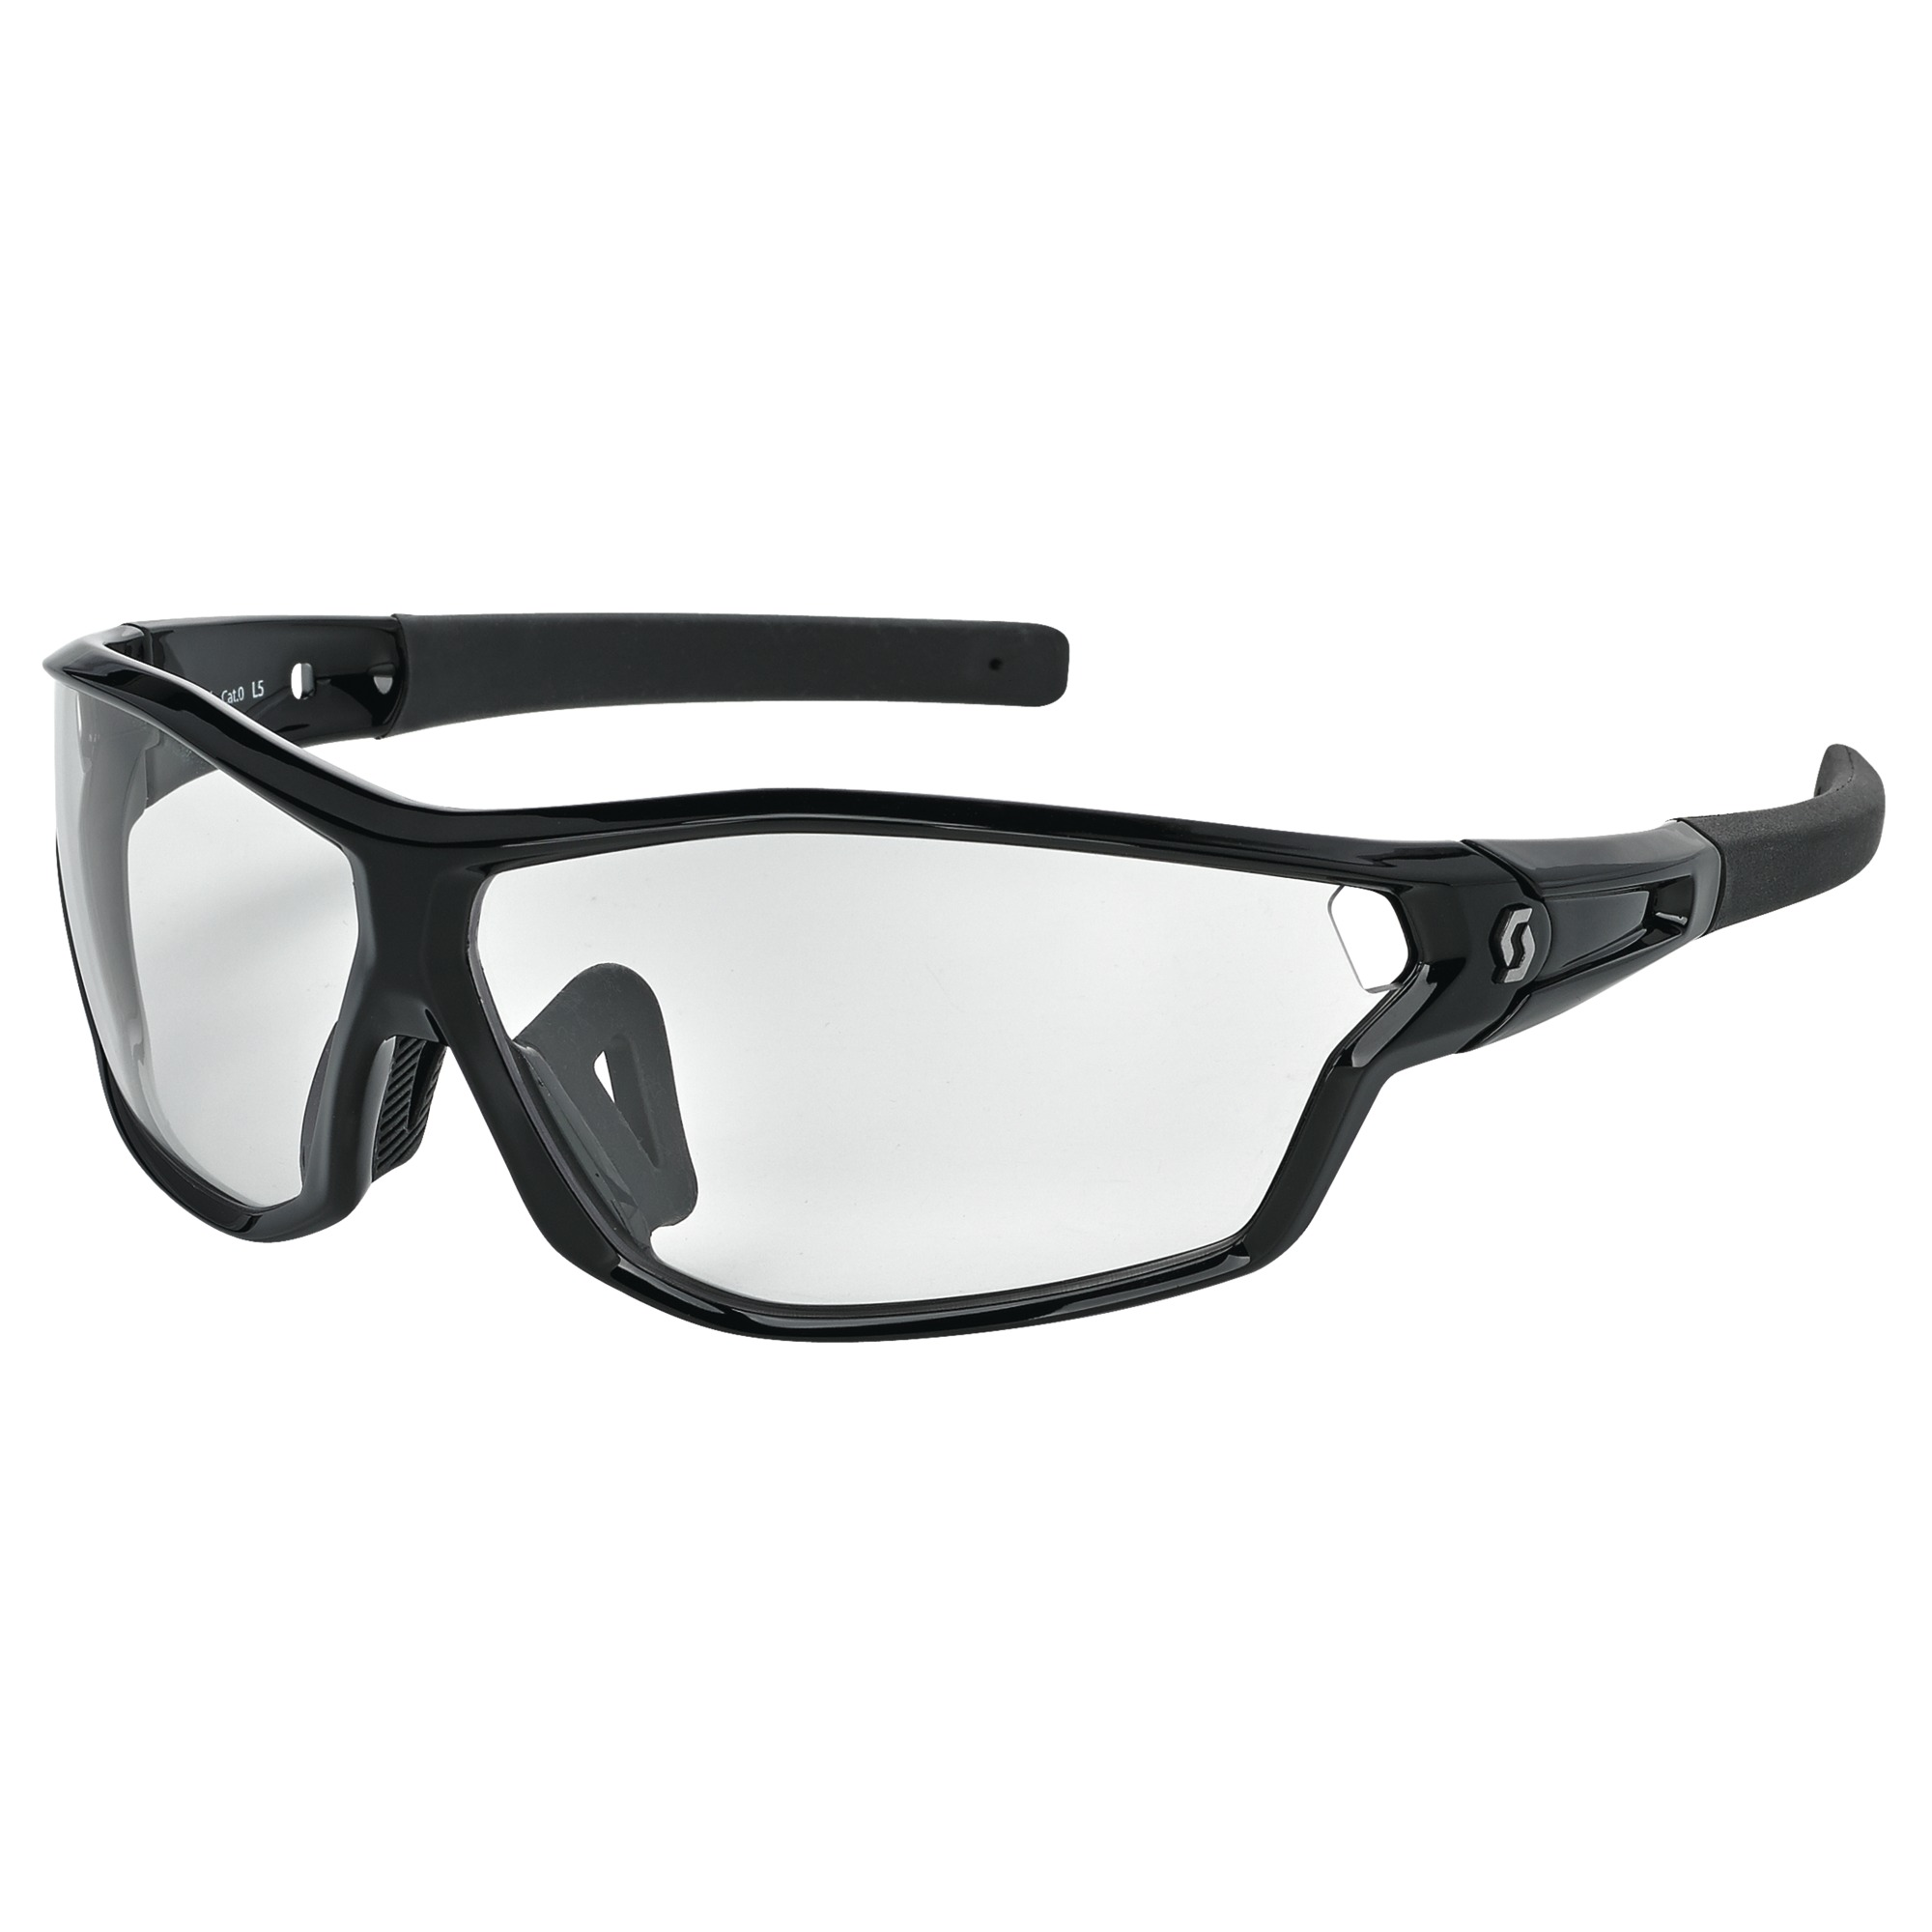 OCCHIALE SPORTIVO SCOTT LEAP FULL FRAME SUNGLASSES 241968 BLACK GLOSSY CLEAR.jpg